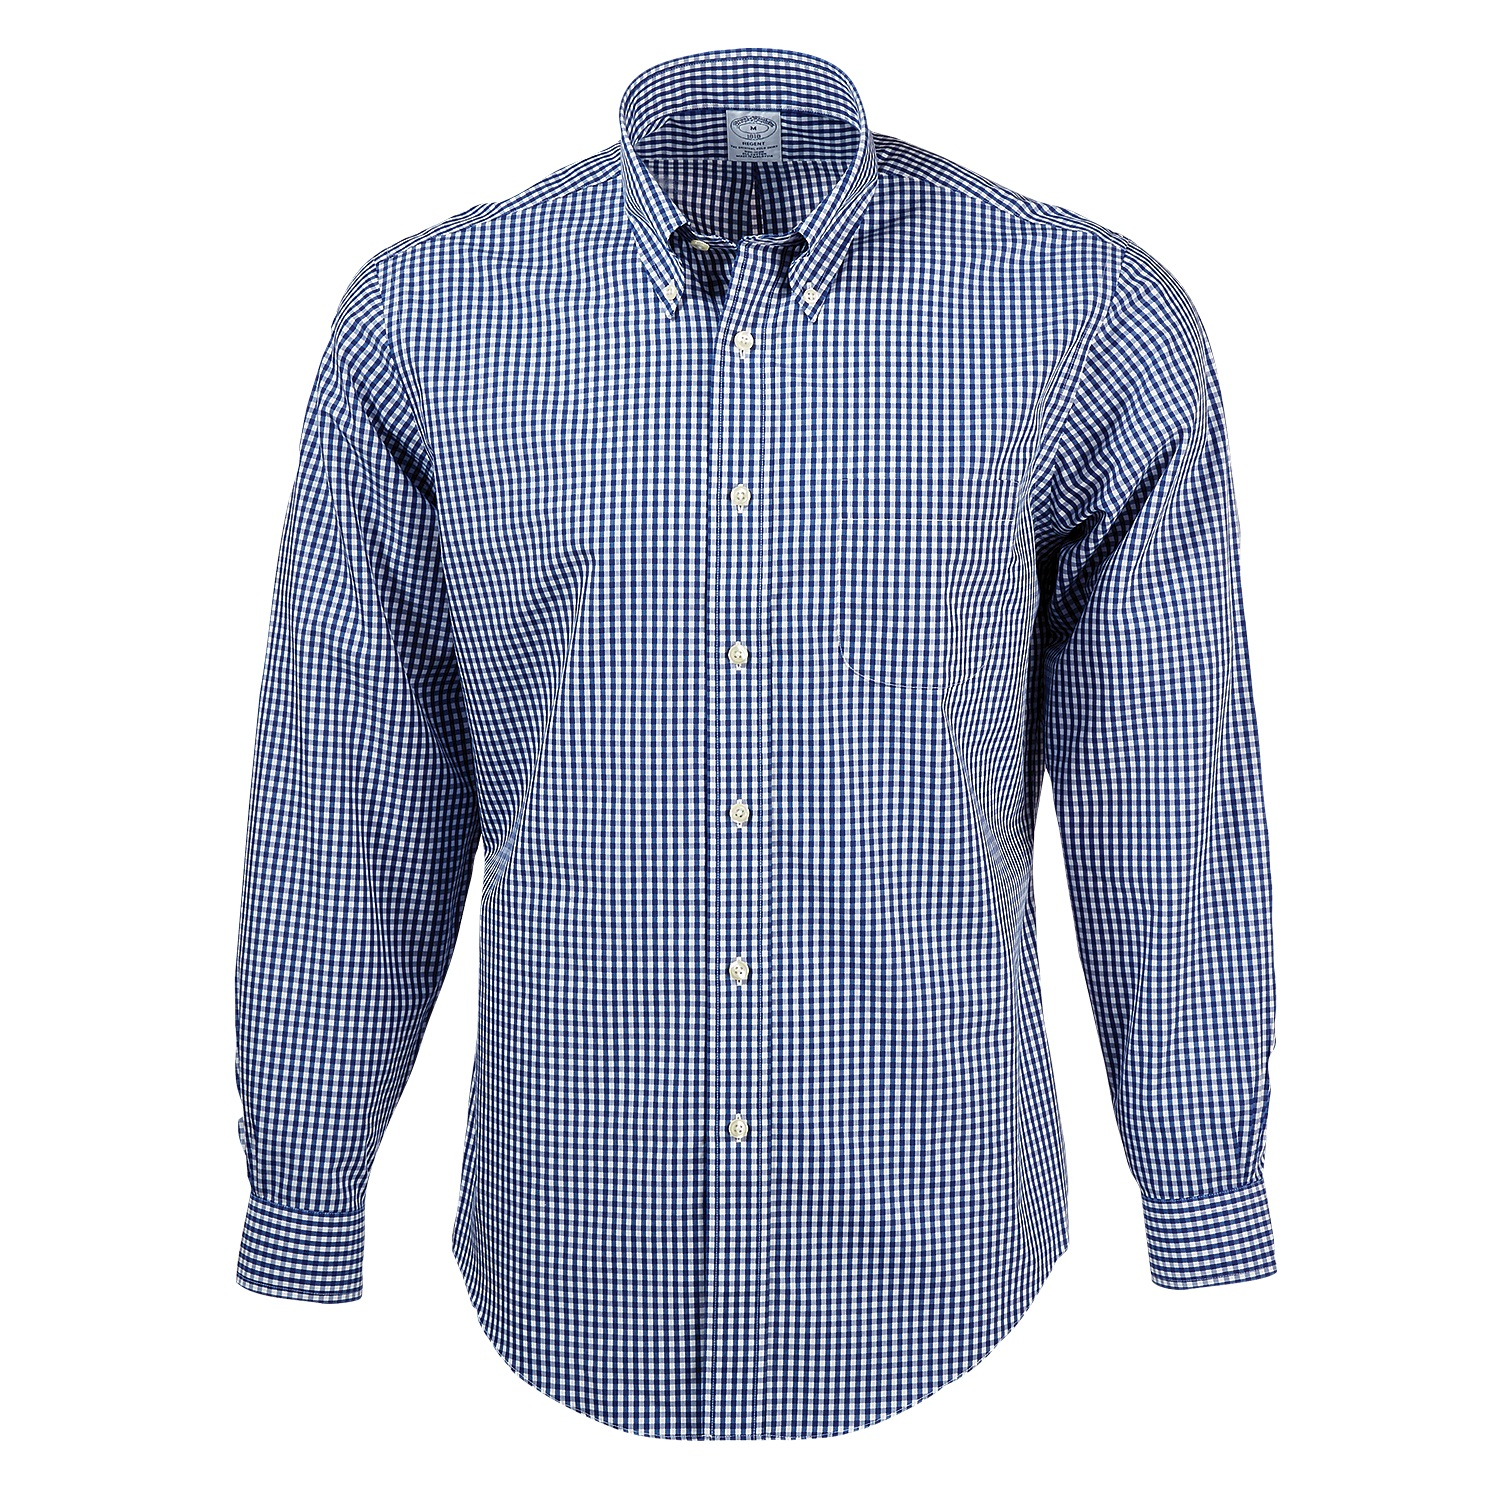 Brooks Brothers BR0731 - Men's Madison Fit Non-Iron Gingham Sport Shirt